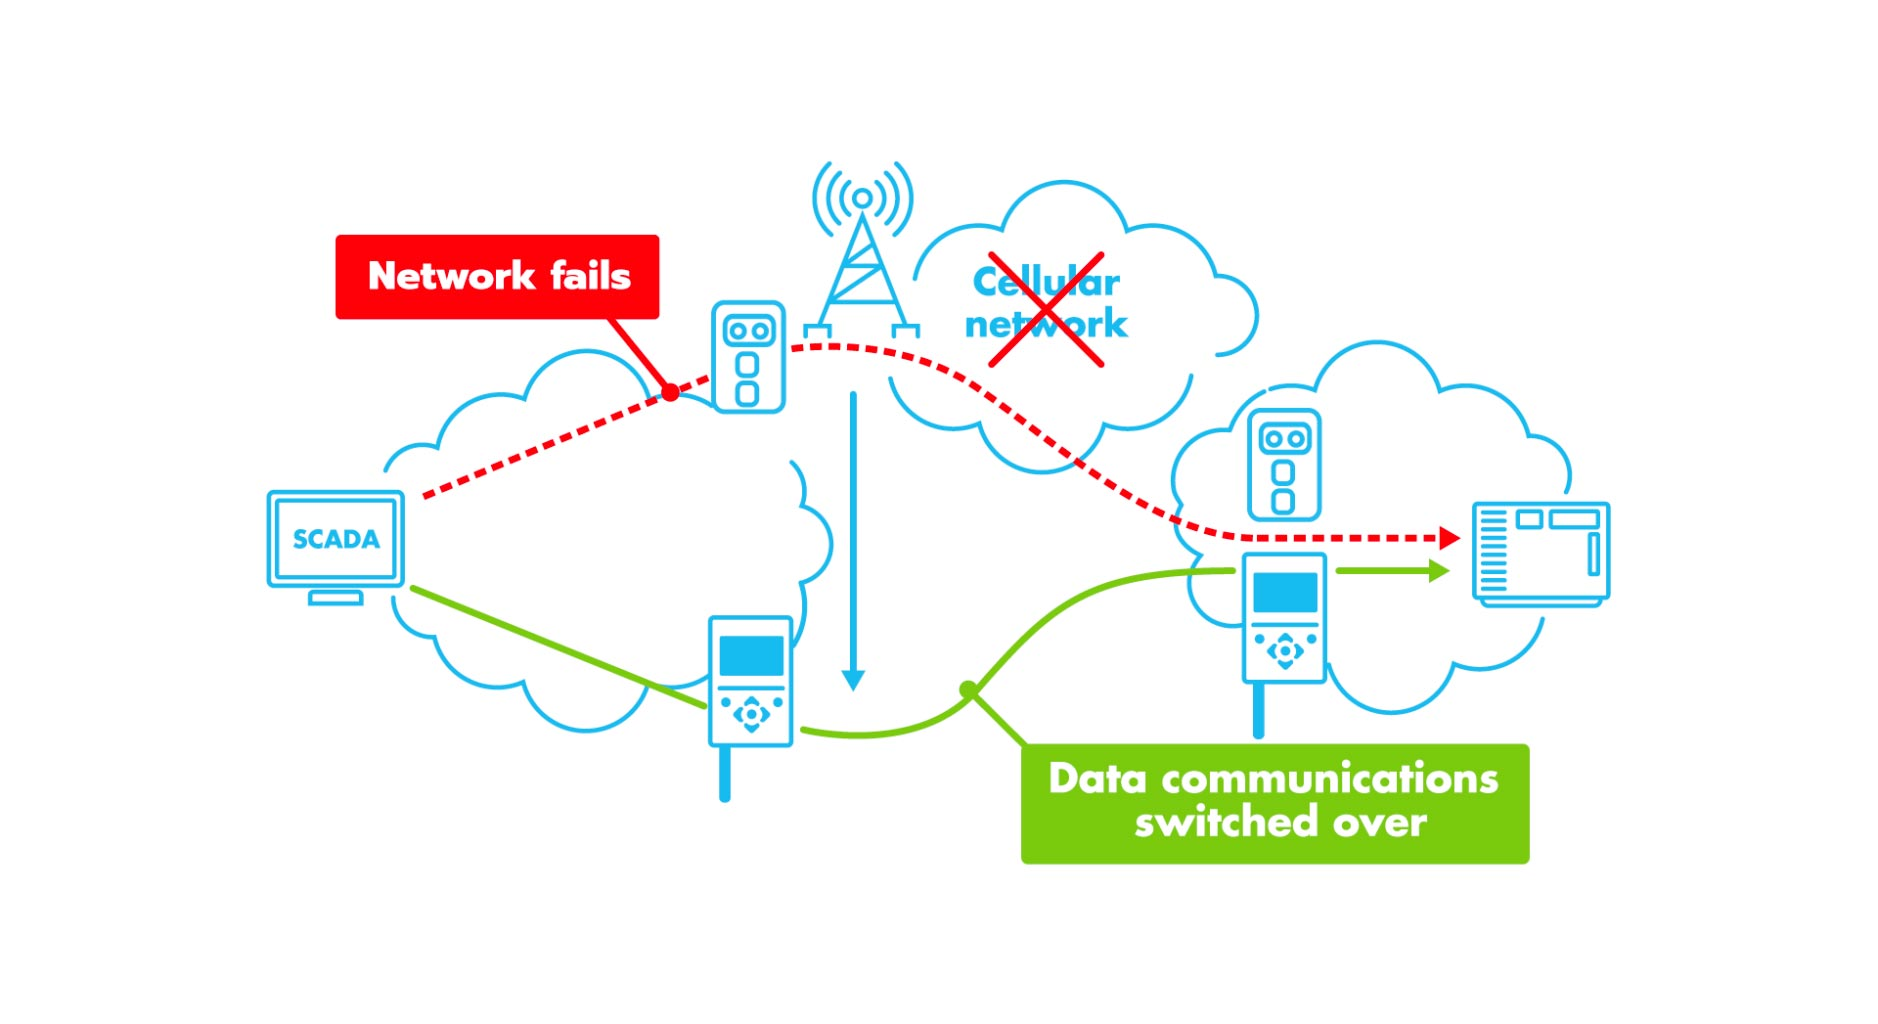 Sacem Smart Satel Radio Communication Together With Crystal Circuit Diagram Additionally Usb To Serial High Availability By Redundancy Adjacent Technologies